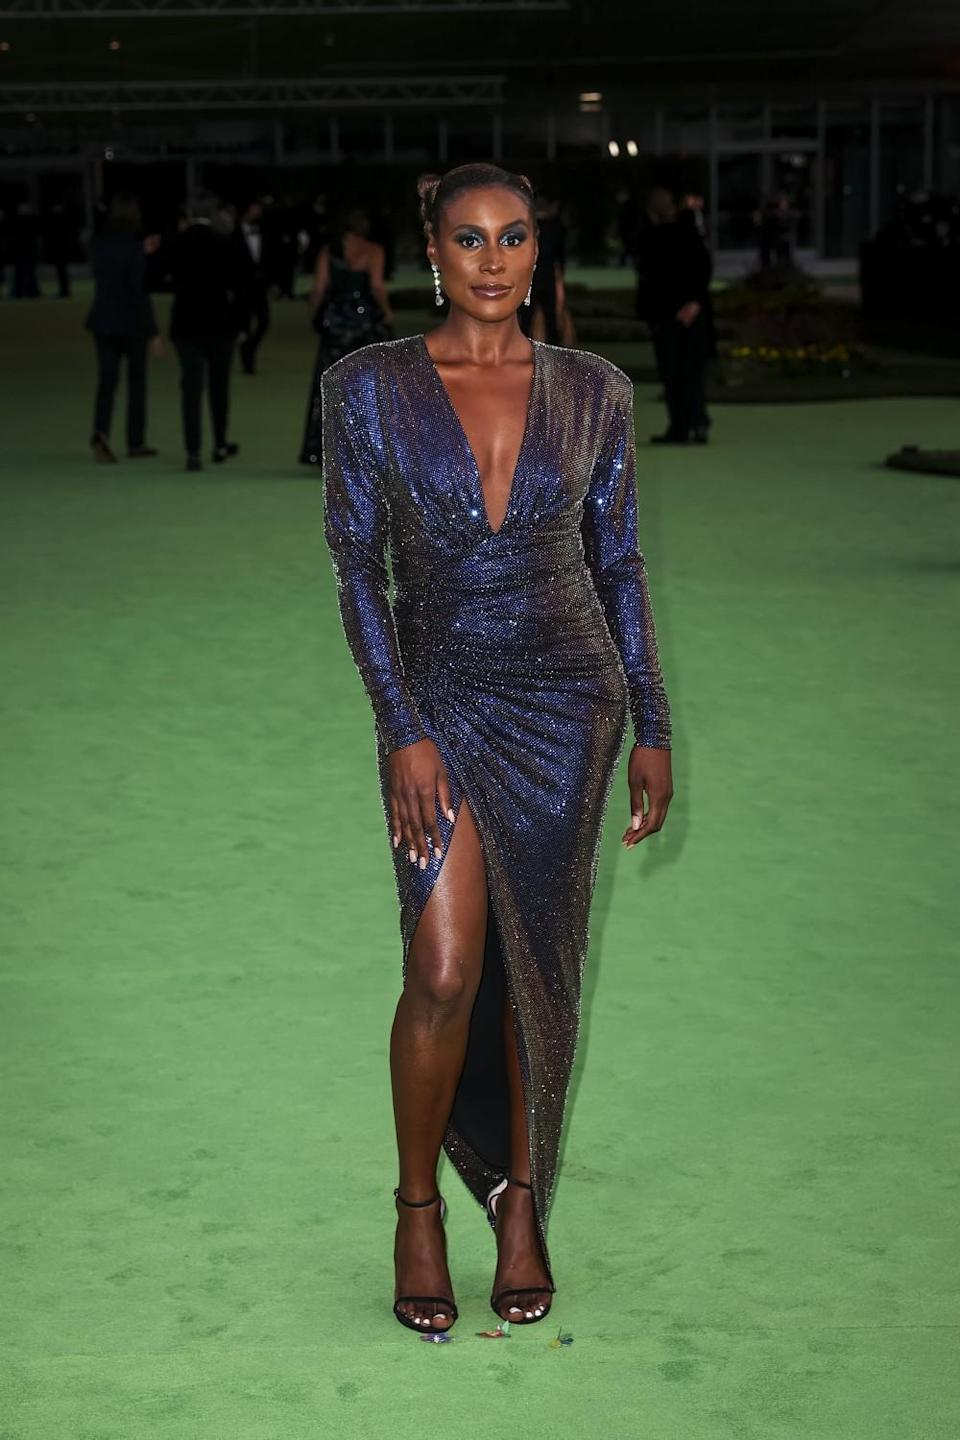 A woman in a sparkly blue dress posing on a green carpet